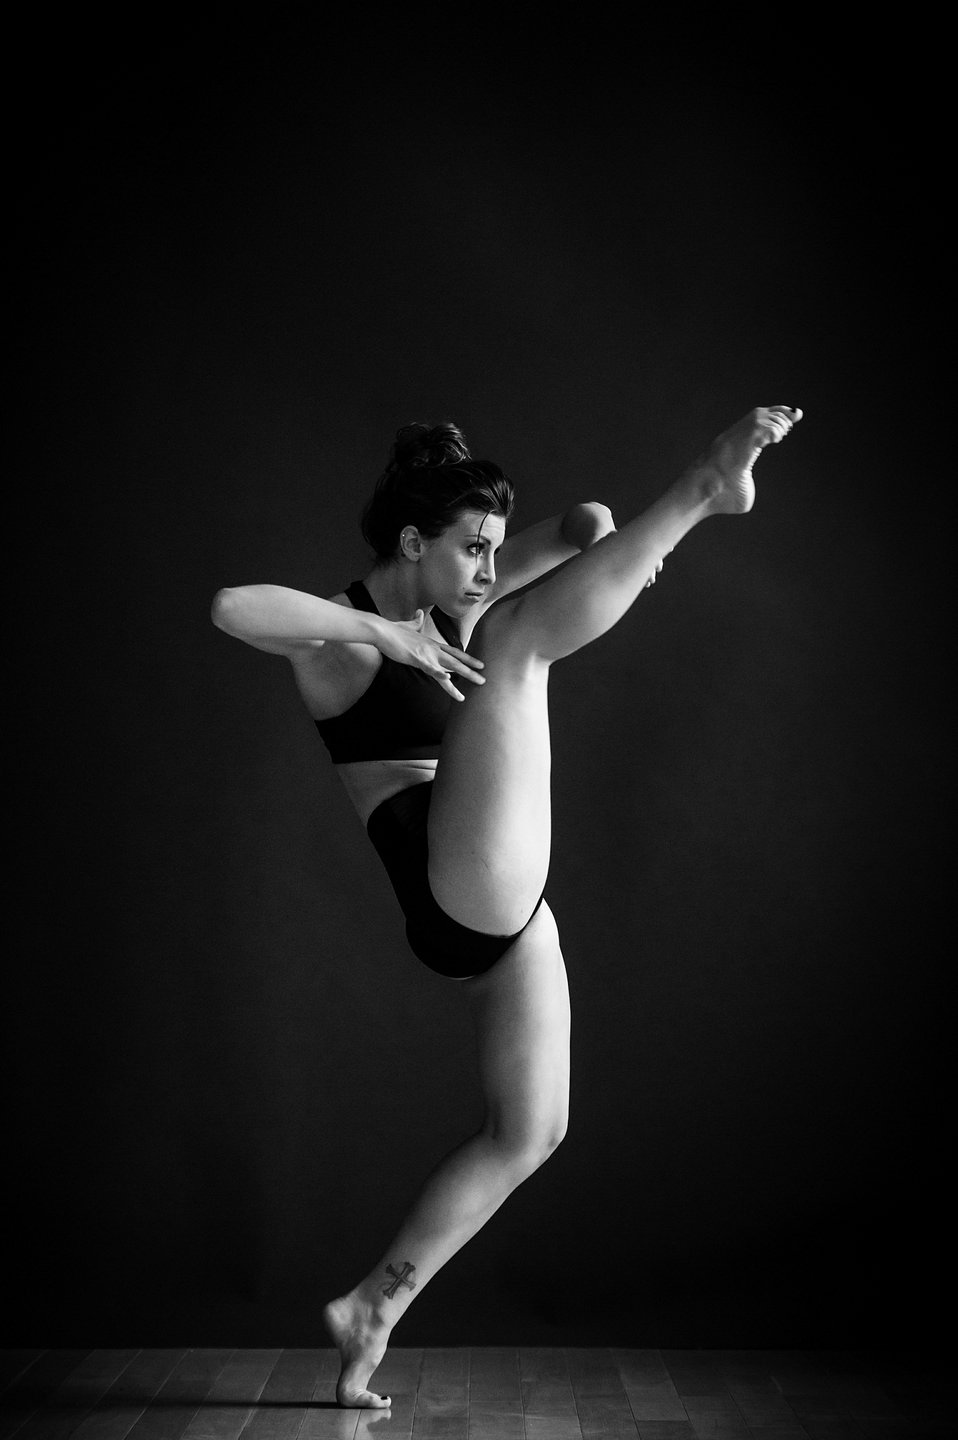 Los Angeles Dance Portrait Photo - Stephanie Abrams - by Tommy Xing Photography 04.jpg